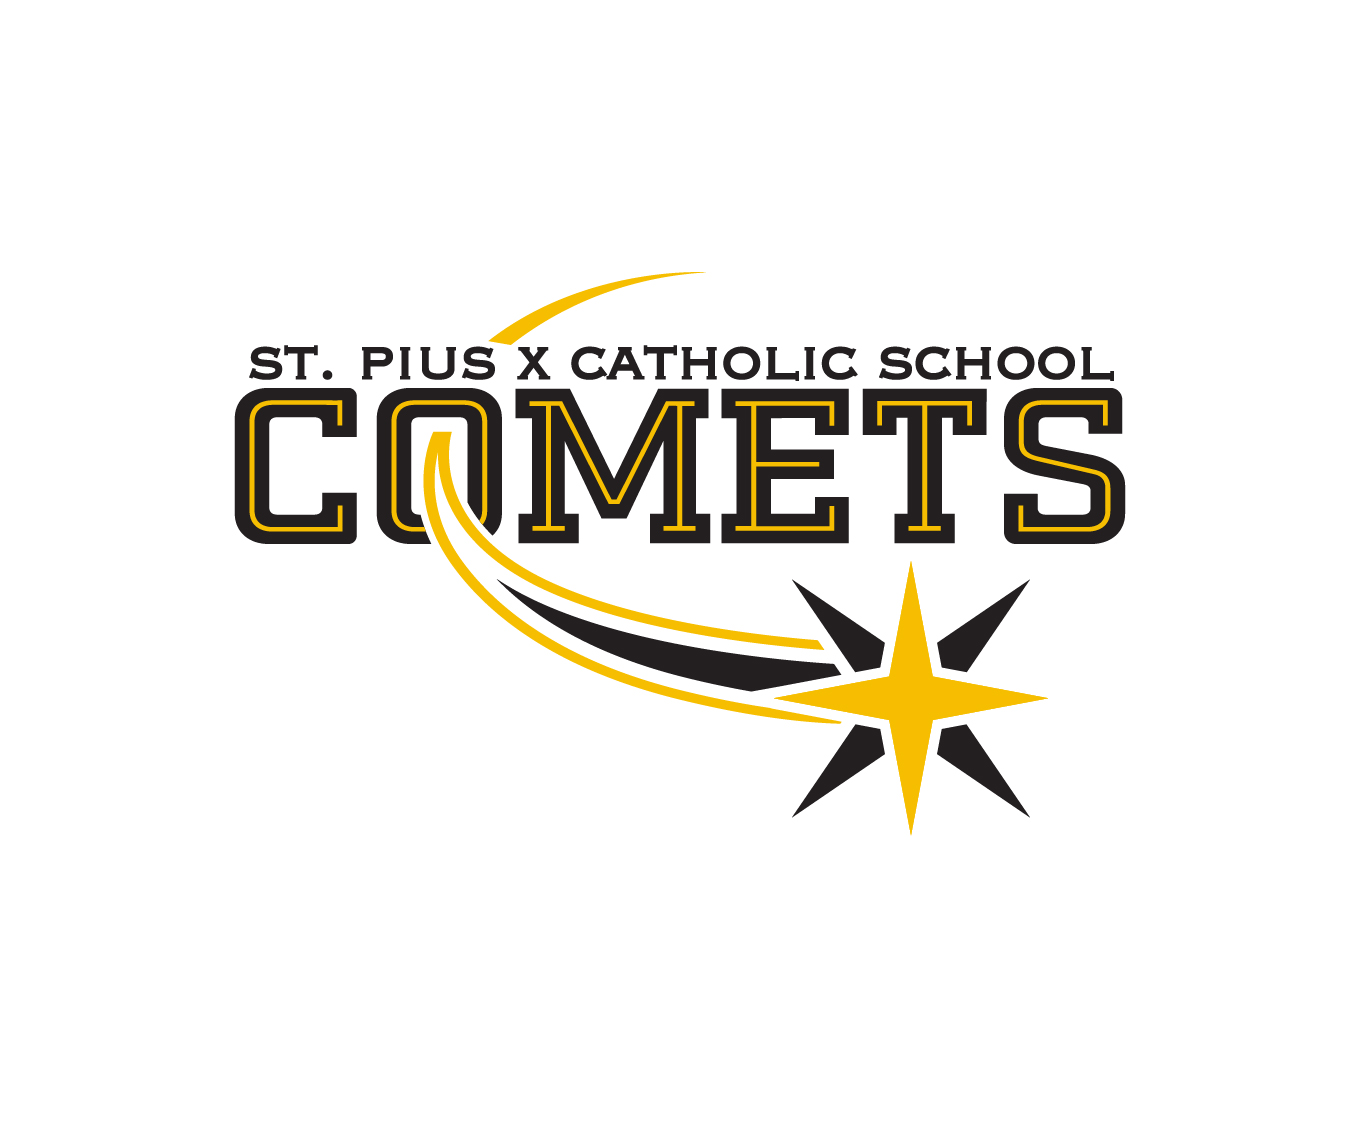 St. Pius Catholic School Comets Athletic Logo K-8 Education